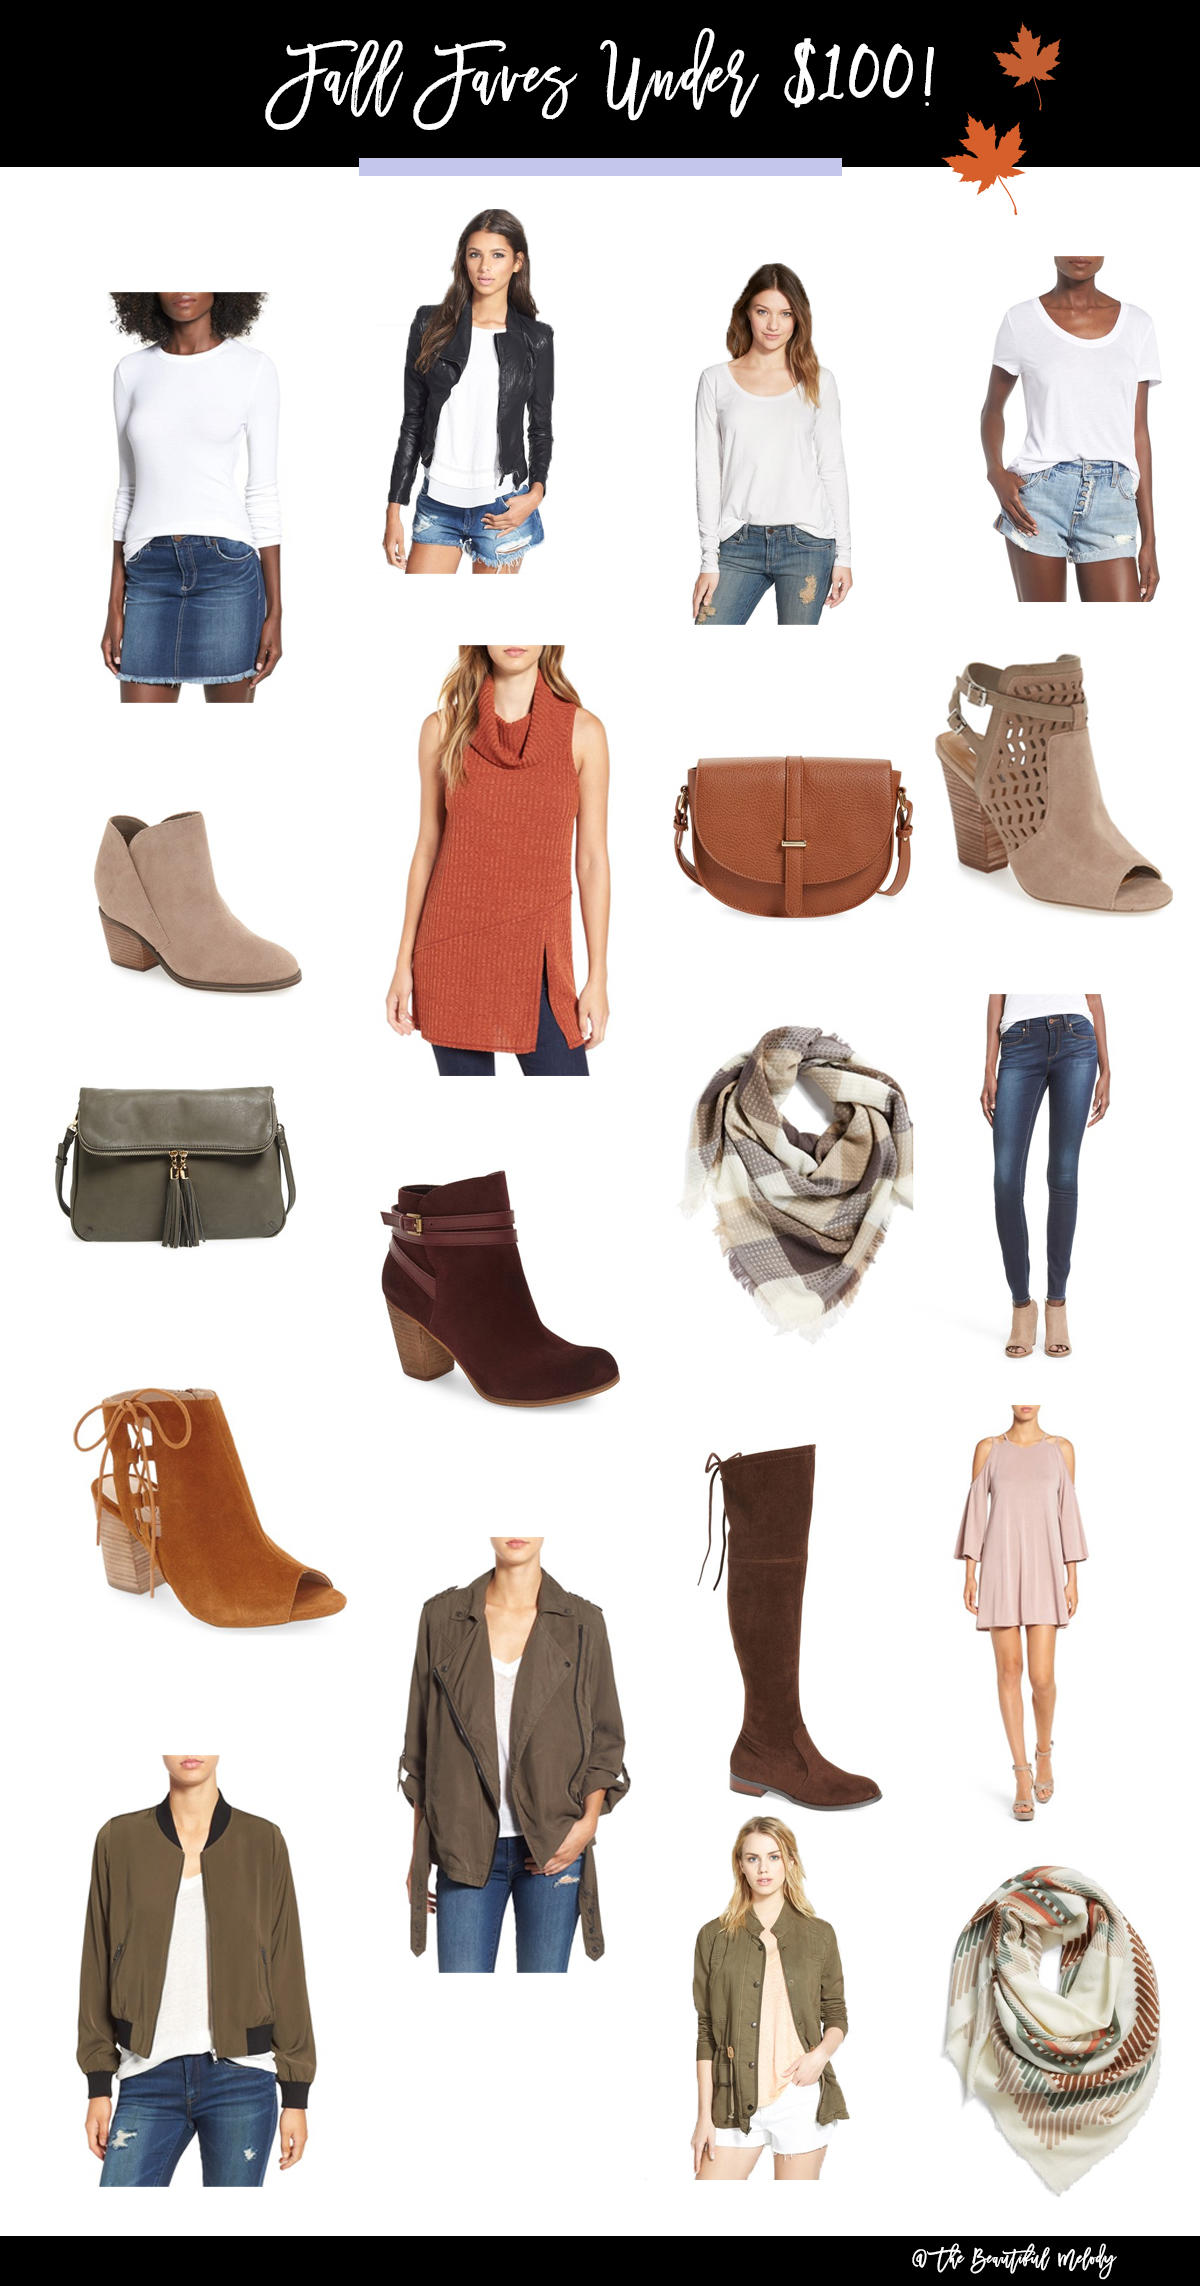 fall-faves-under-100